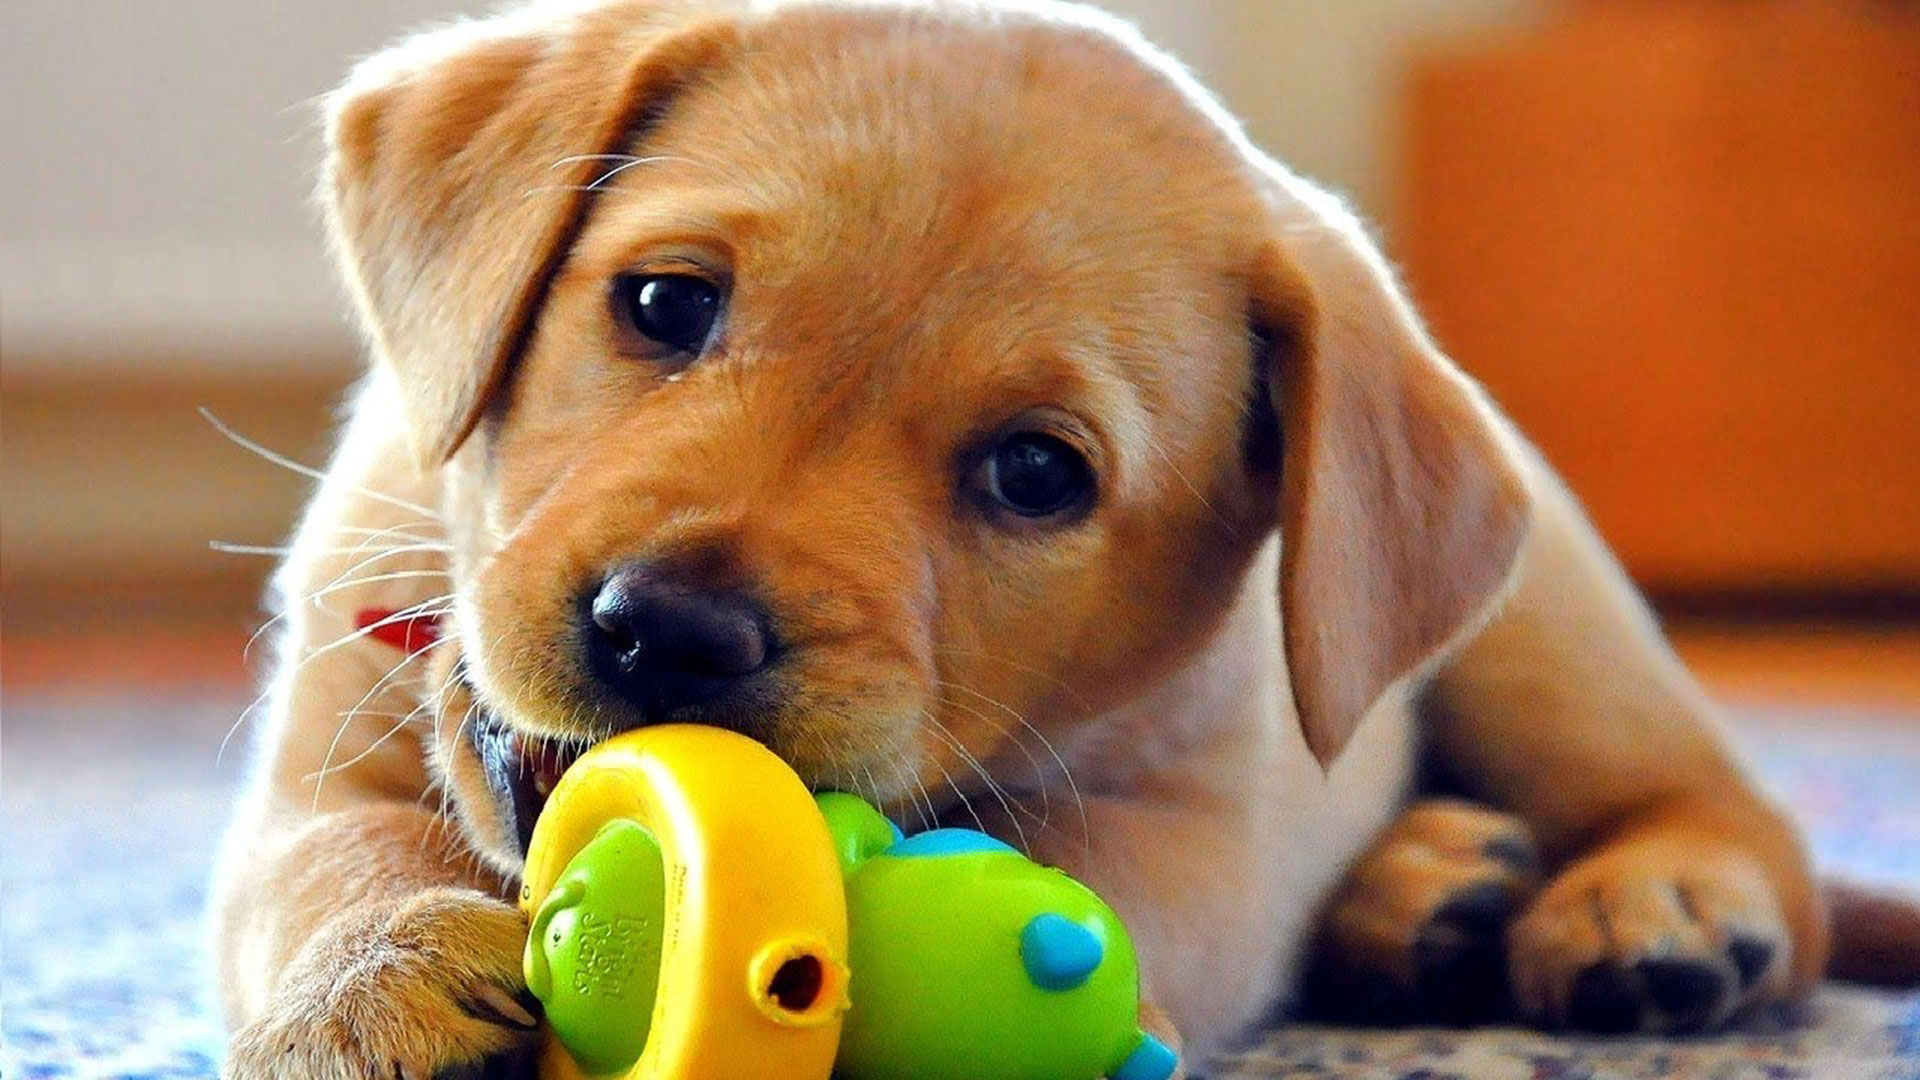 cute-dog-play-with-toy1920x1080-via-Classy-Bro-wallpaper-wp3404319